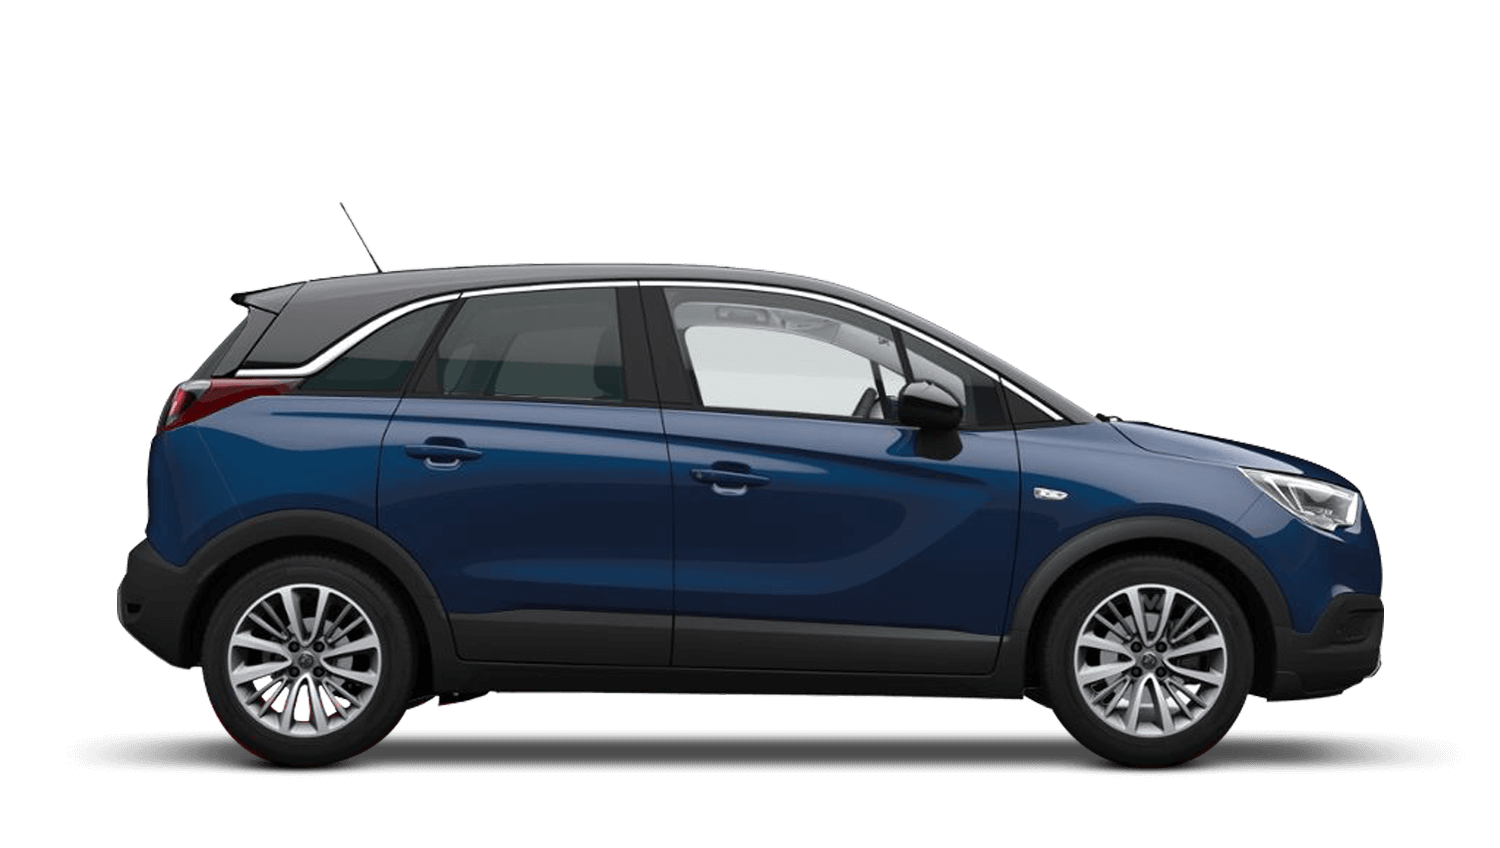 Navy Blue (Metallic) Vauxhall Crossland X